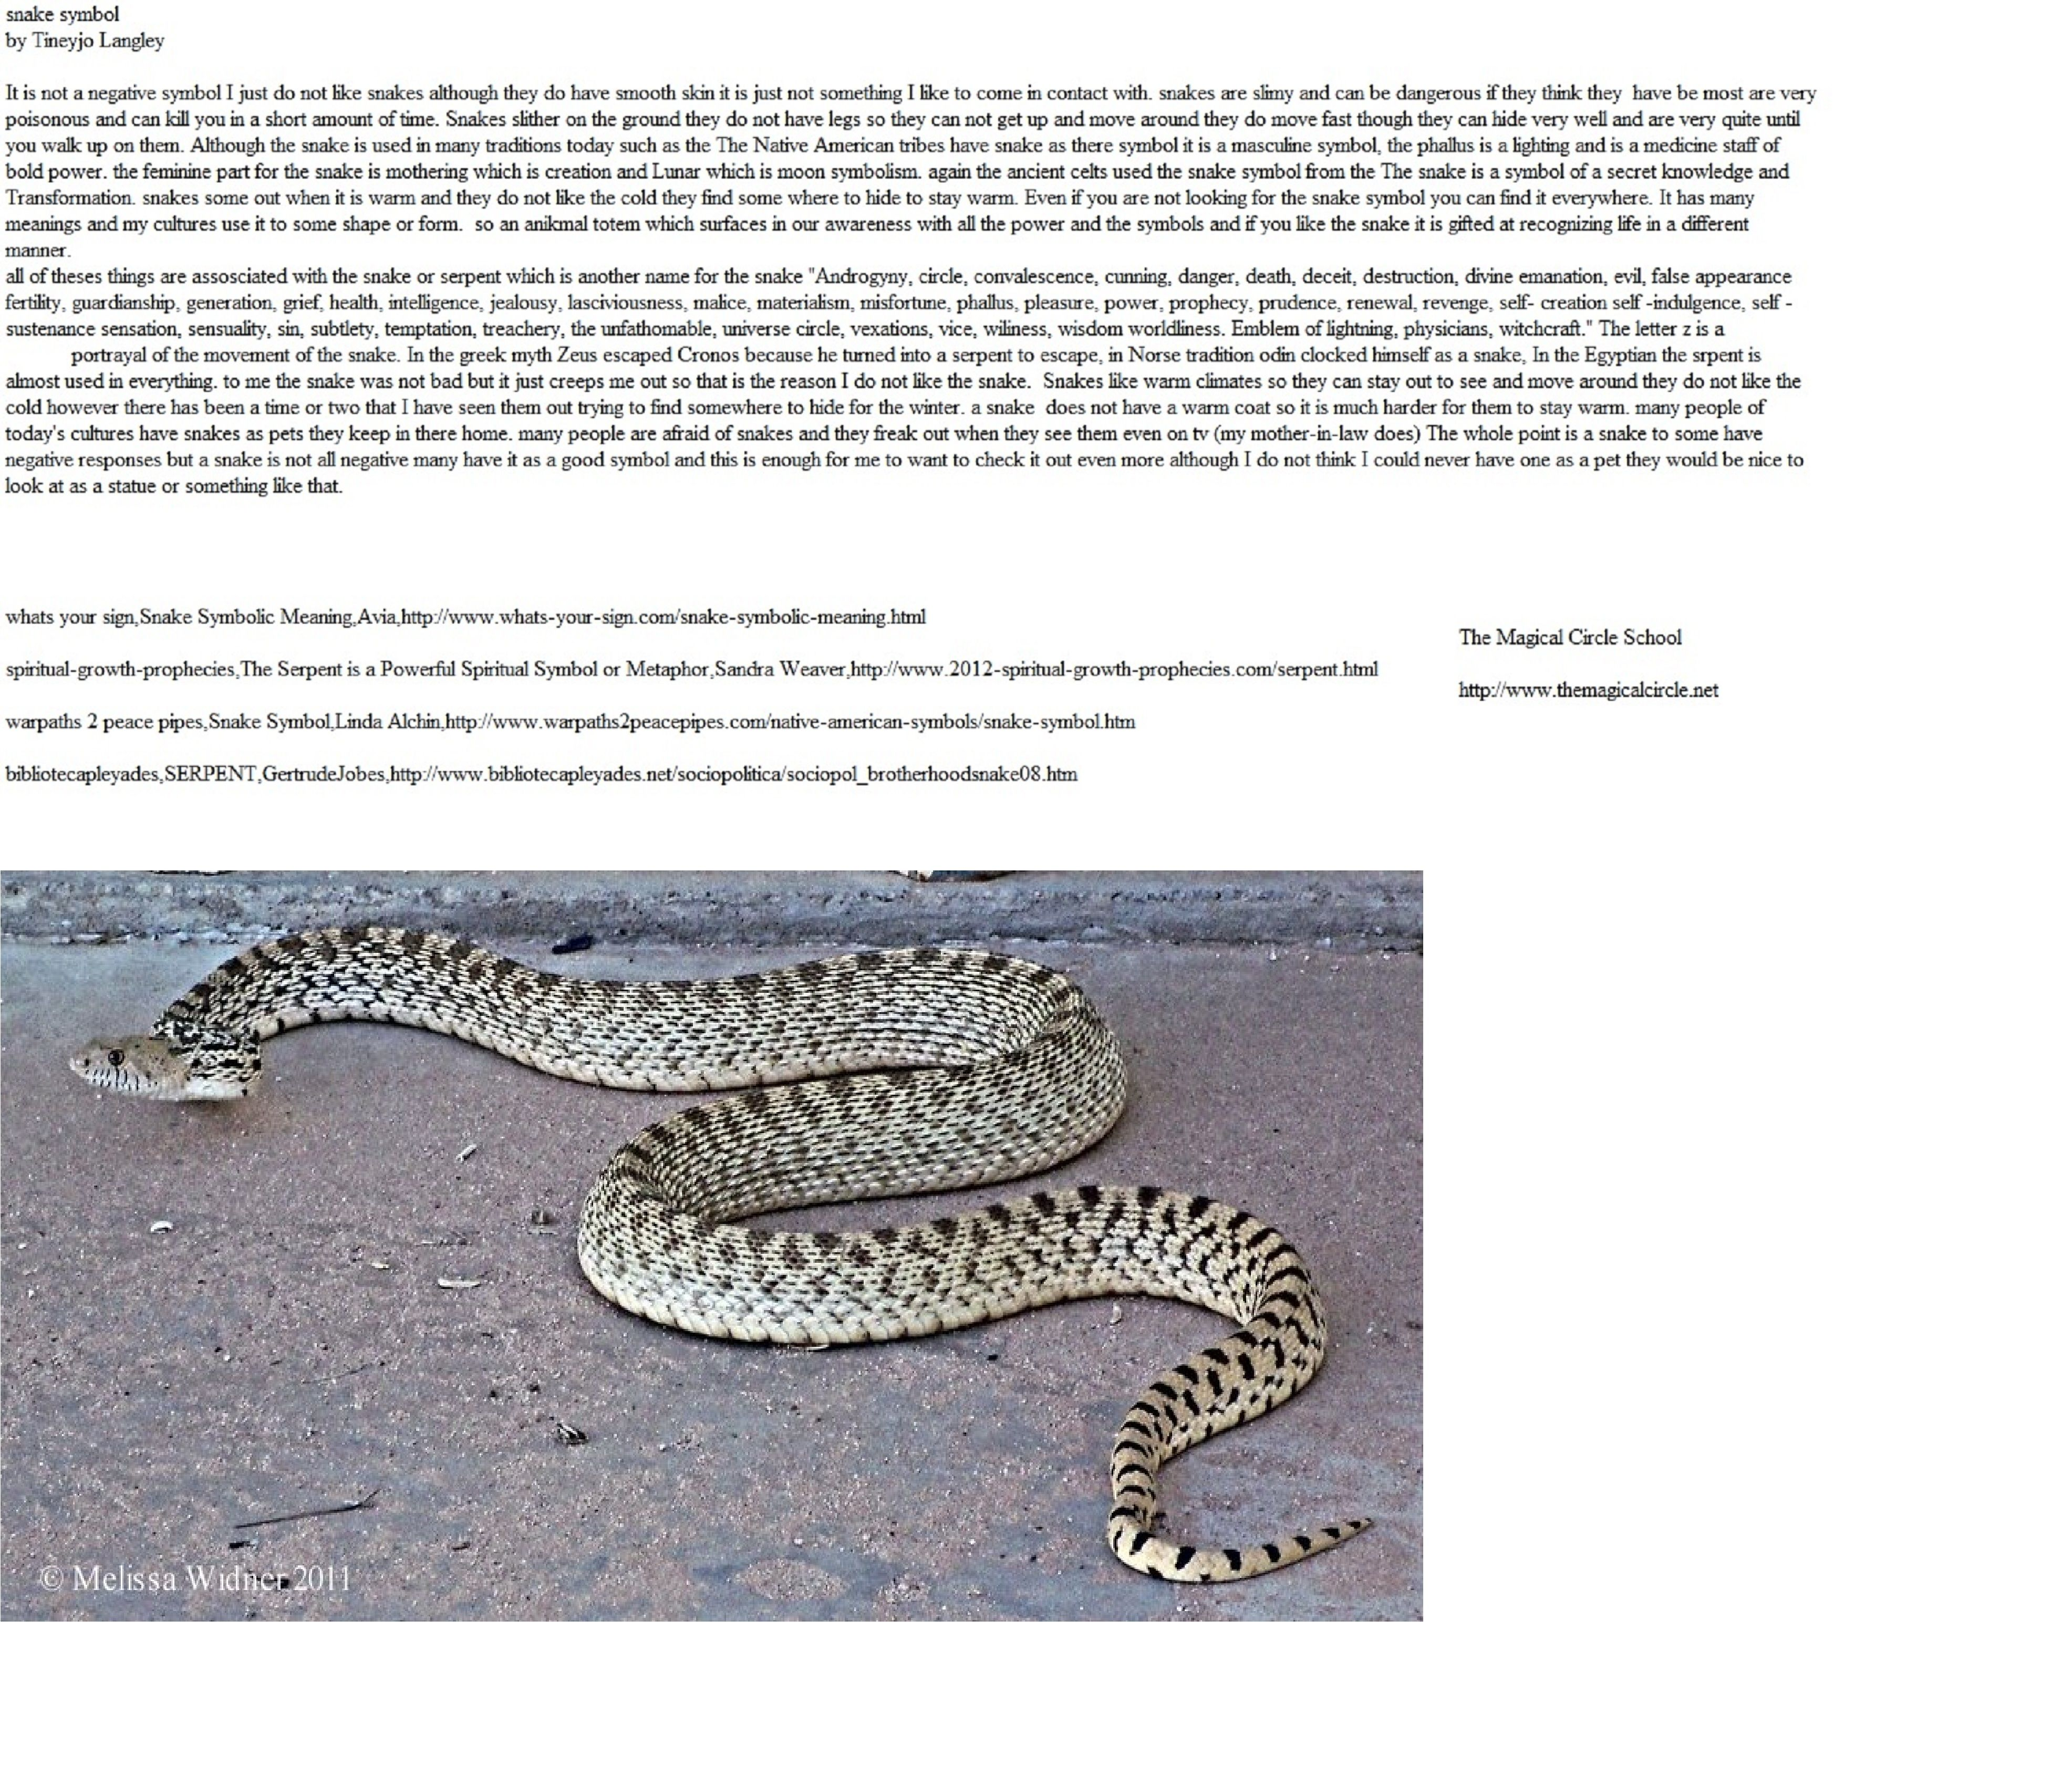 A snake and how it is misunderstood The Magical Circle